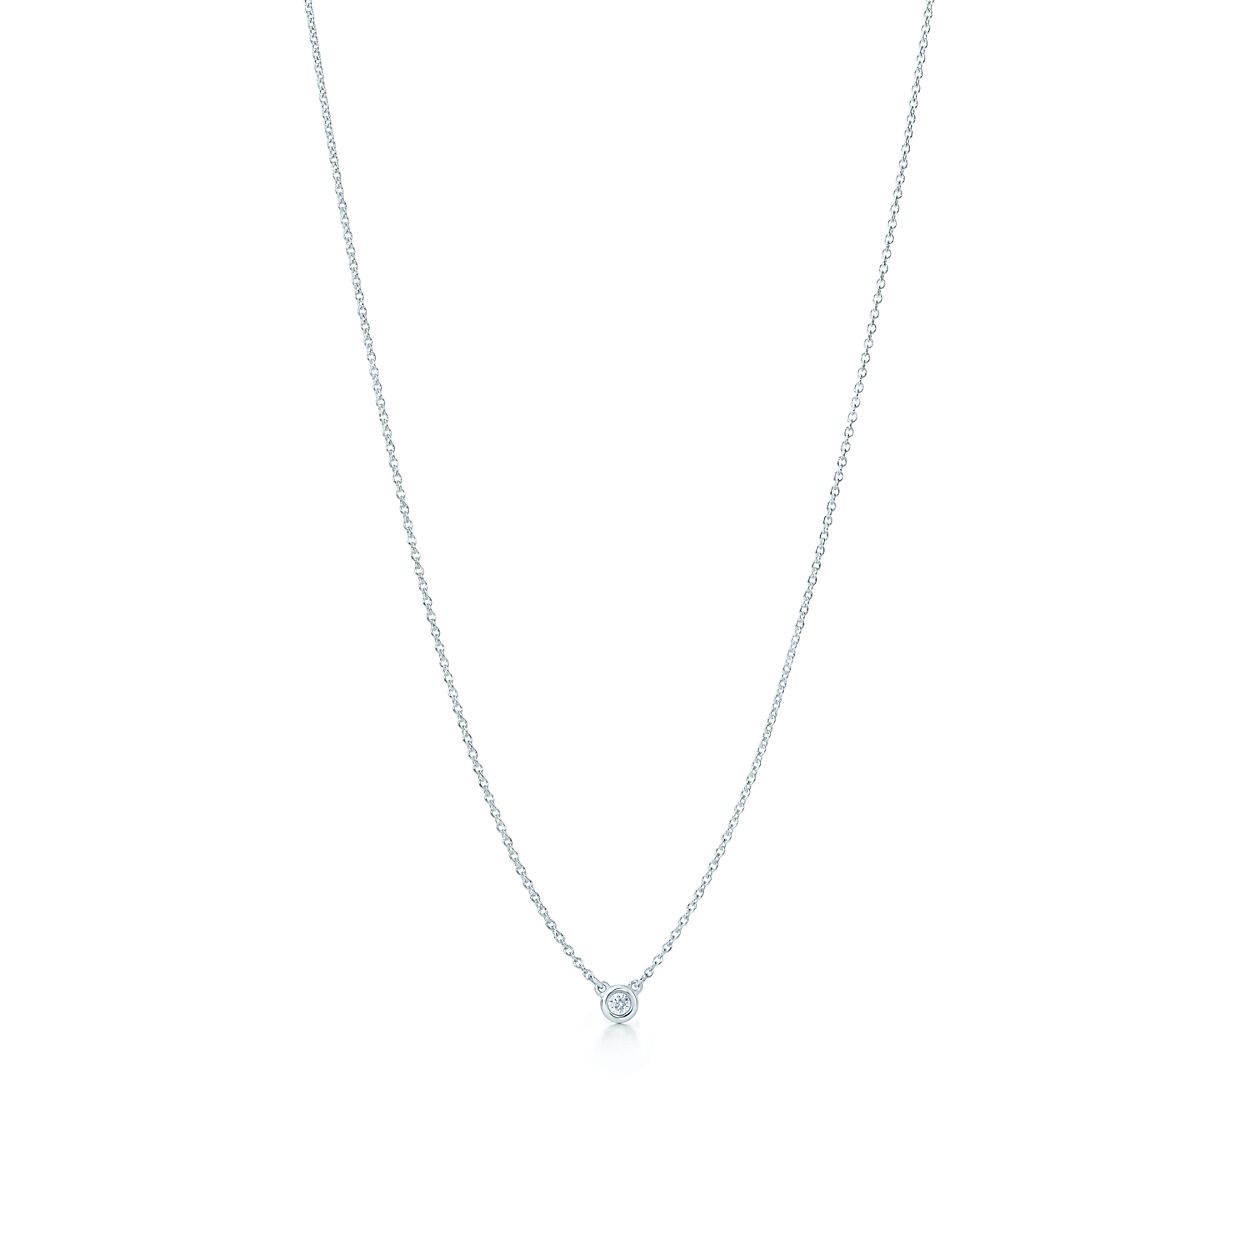 Diamond pendant necklace in sterling silver elsa peretti elsa perettidiamonds by the yard pendant mozeypictures Gallery